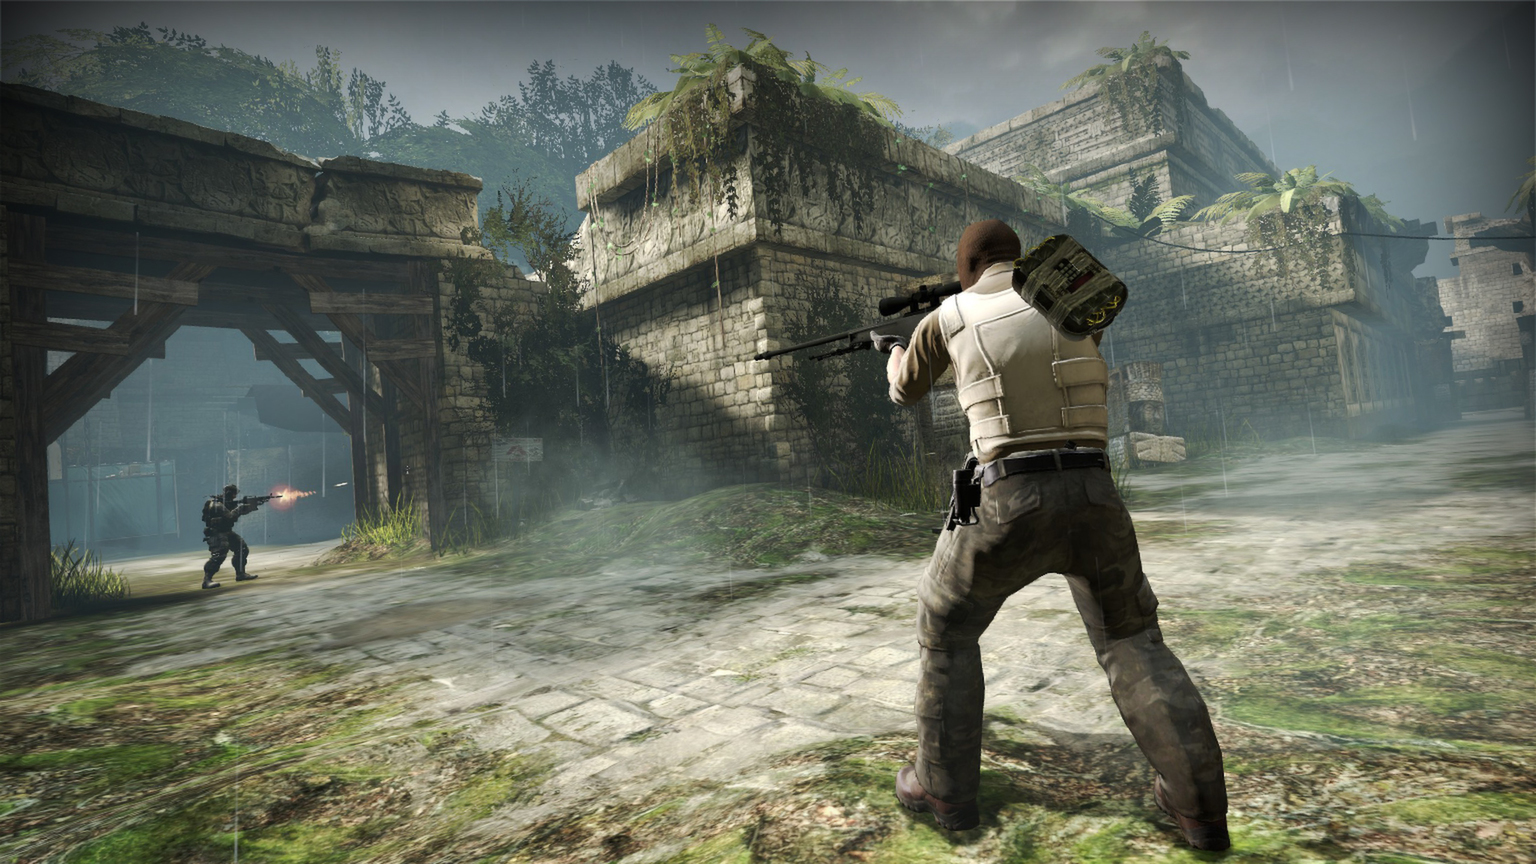 Counter Strike: Global Offensive Gained 20 Million Players in December